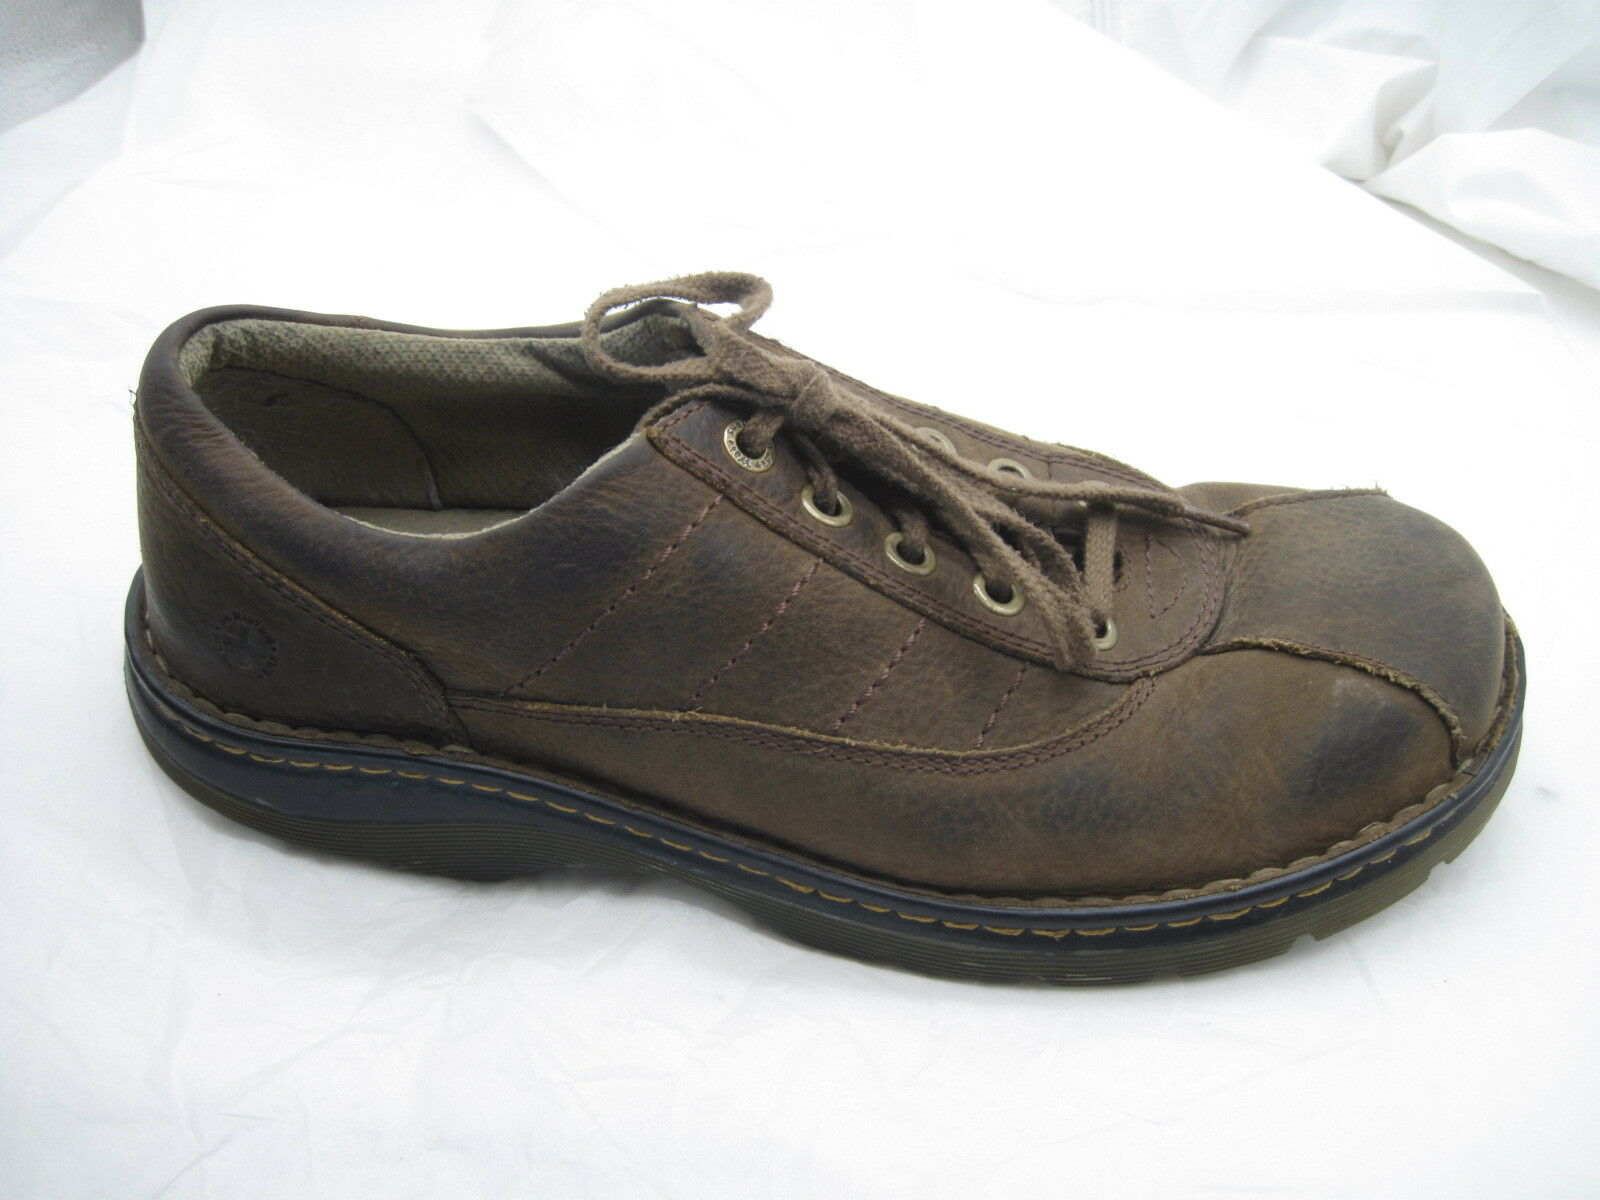 Dr. Doc Martens John brown suede oxfords Mens  casual loafers shoes sz 11M